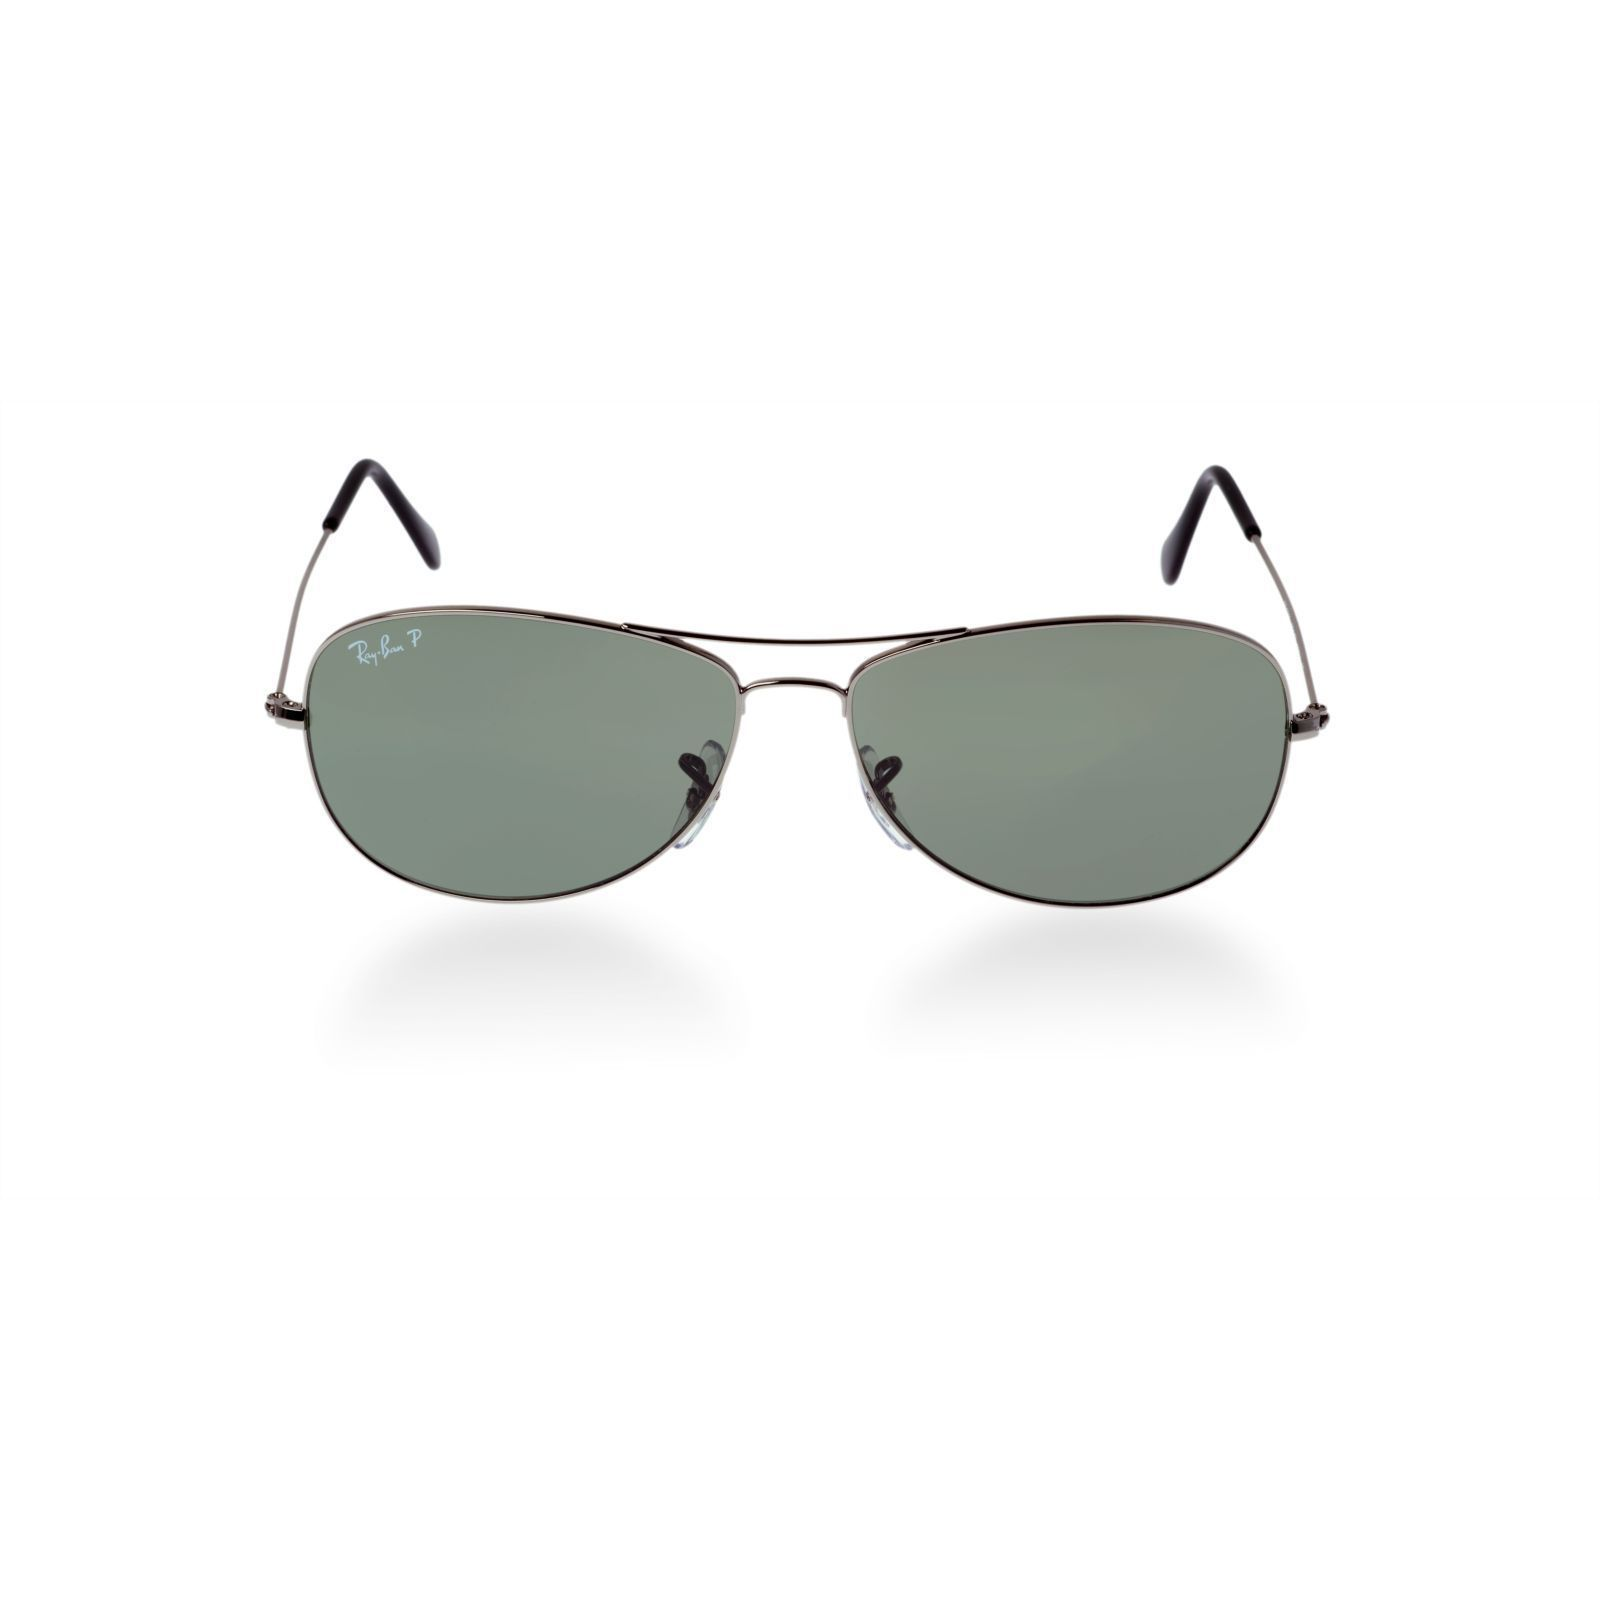 00bcfc52c279e9 Shop Ray-Ban RB3362 004 58 Cockpit Gunmetal Frame Polarized Green 59mm Lens  Sunglasses - Free Shipping Today - Overstock - 14442284